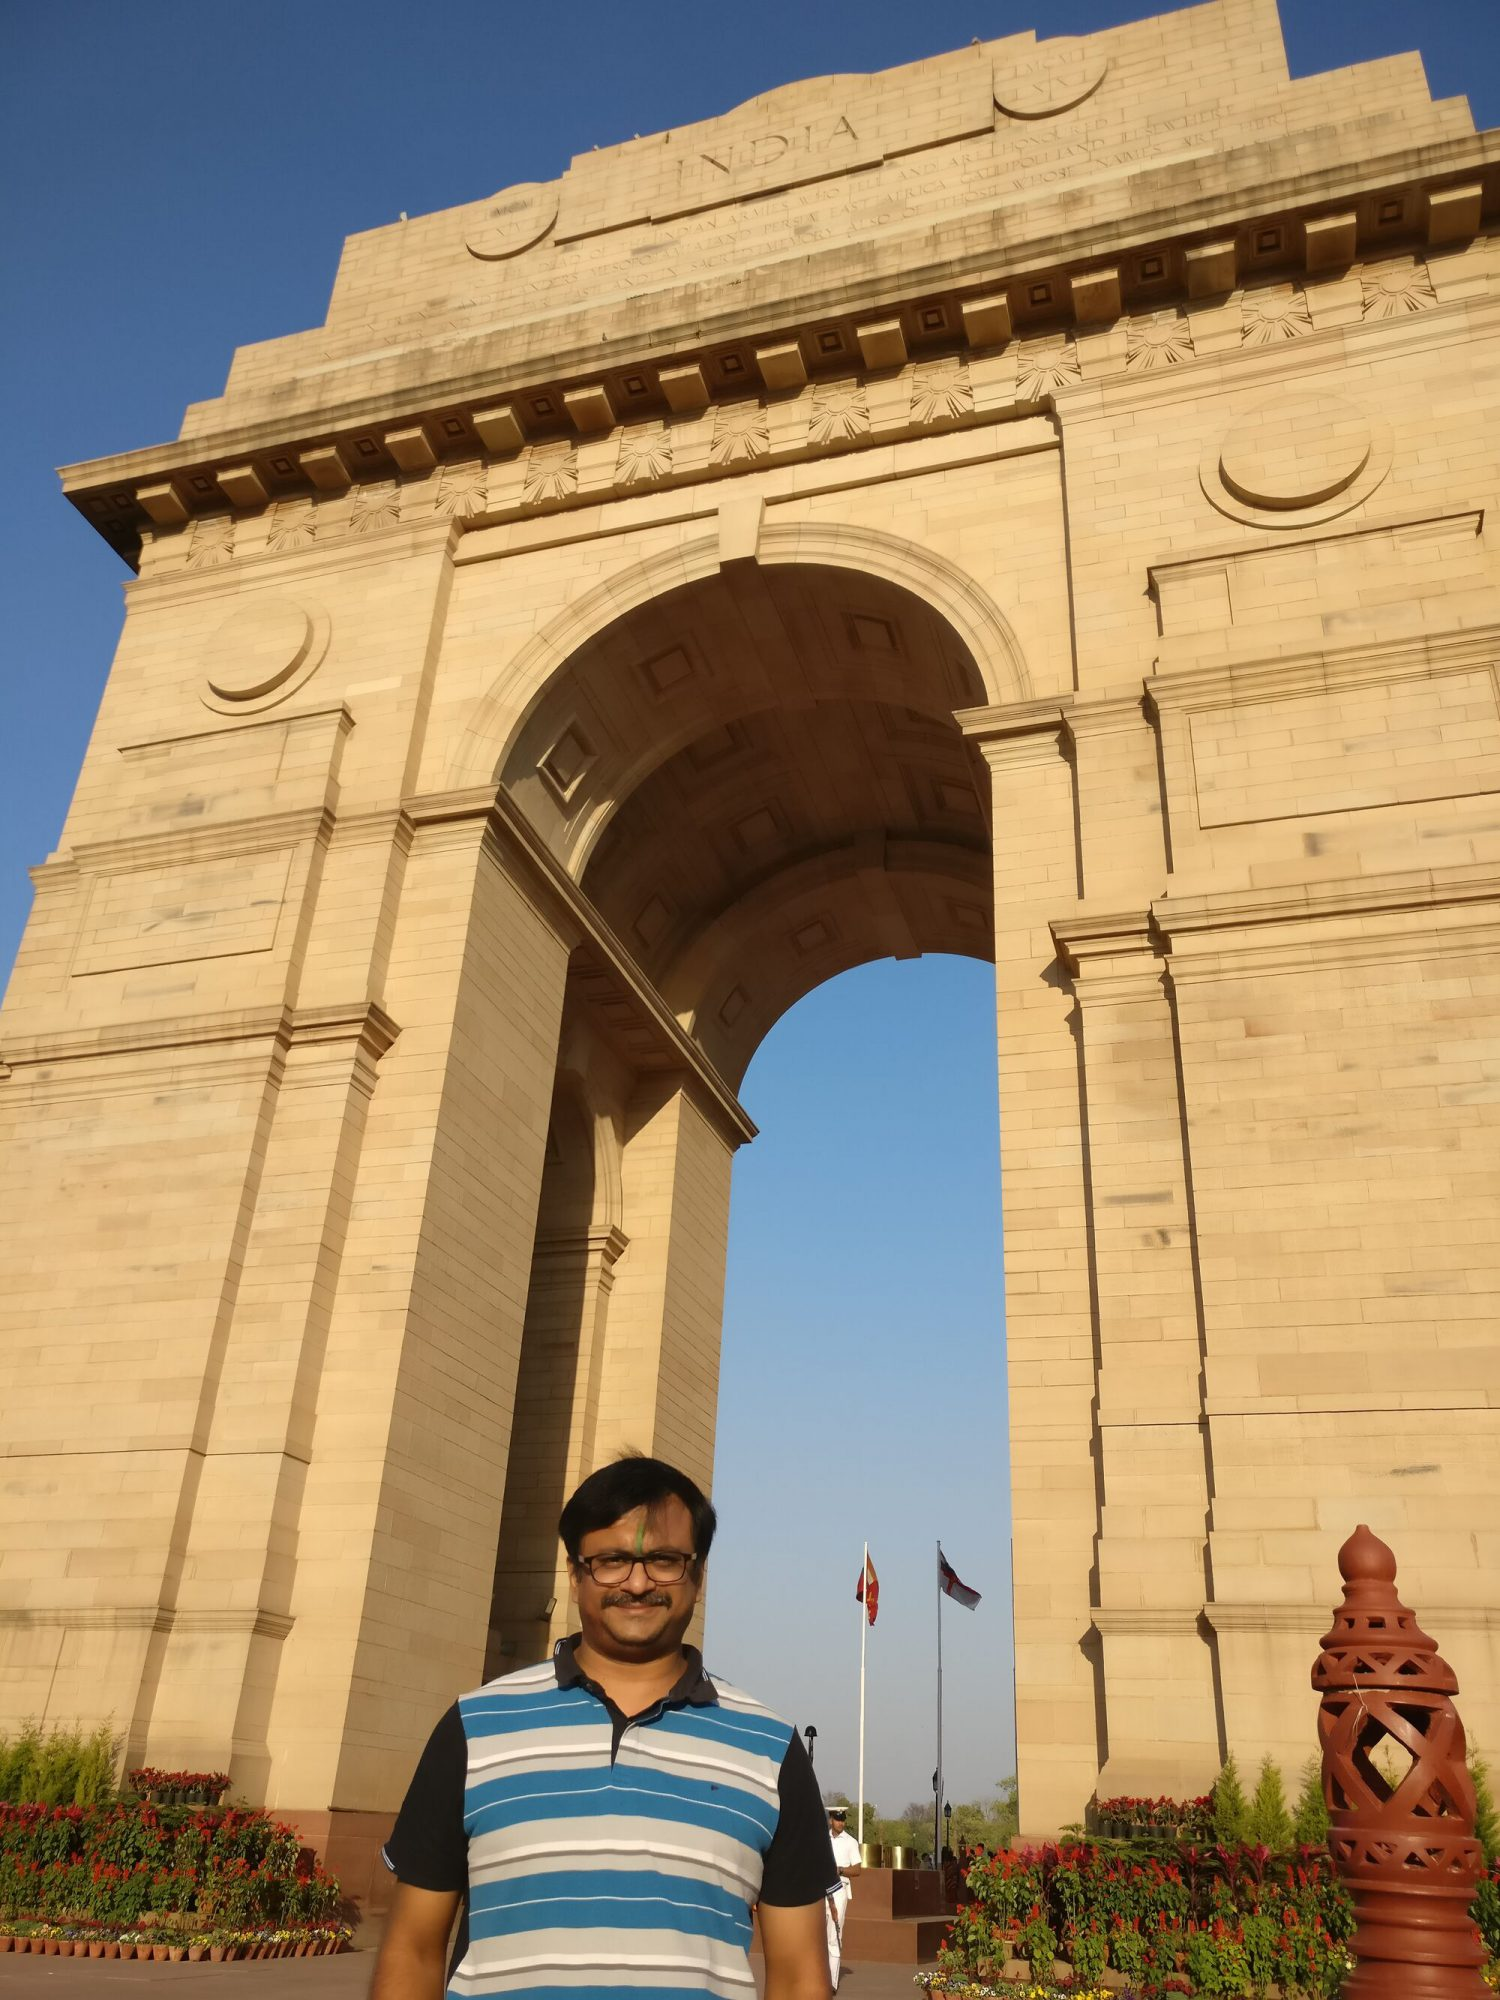 For me, it was a moment of gratitude and national pride to be standing near Amar Jyoti